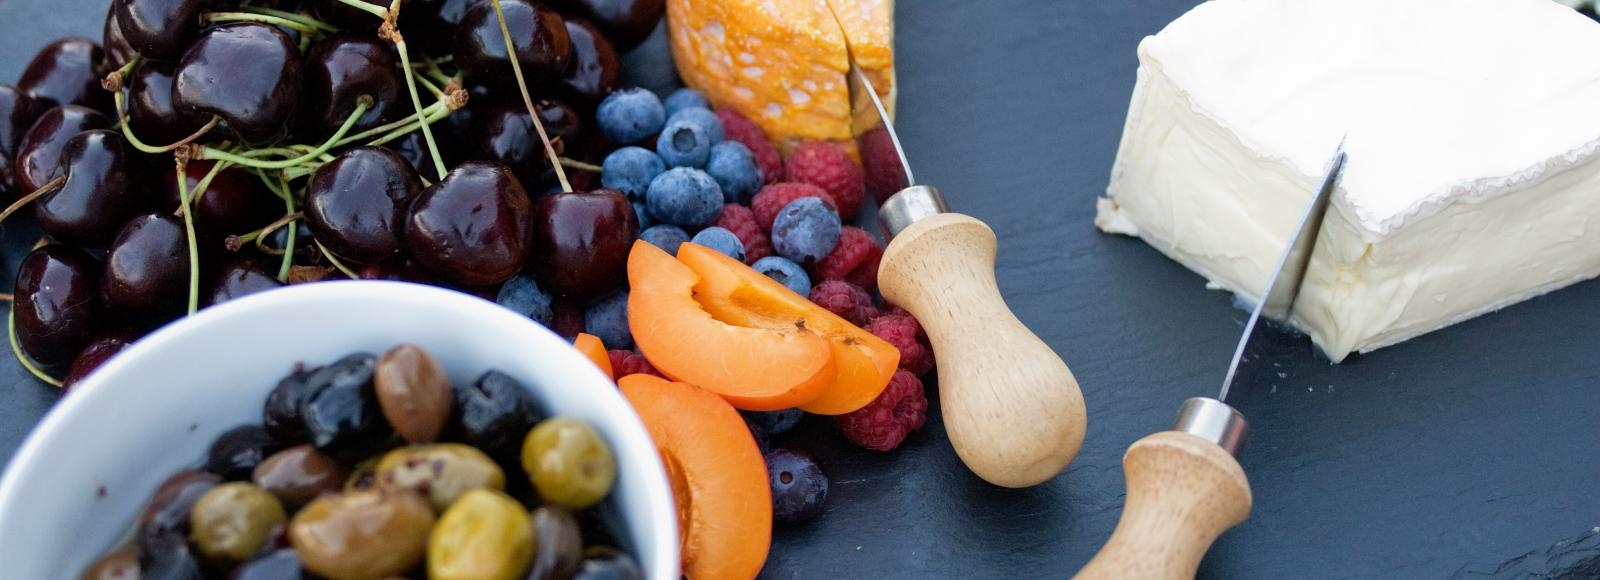 A cheese plate with fruit and olives is displayed on a stone platter